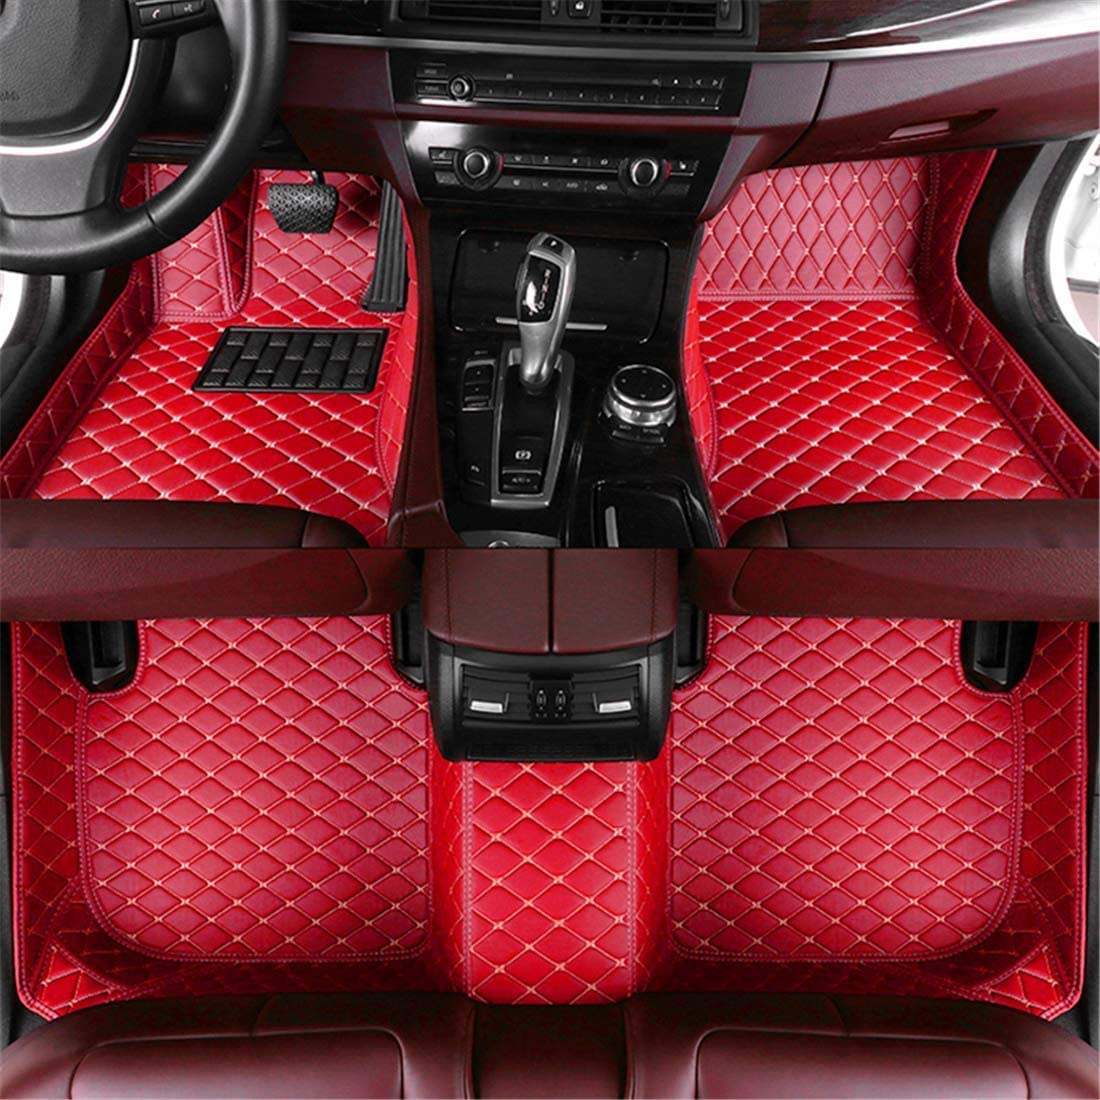 Muchkey car Floor Mats fit for Honda Accord 6th Gen 2003 Full Coverage All Weather Protection Non-Slip Leather Floor Liners red